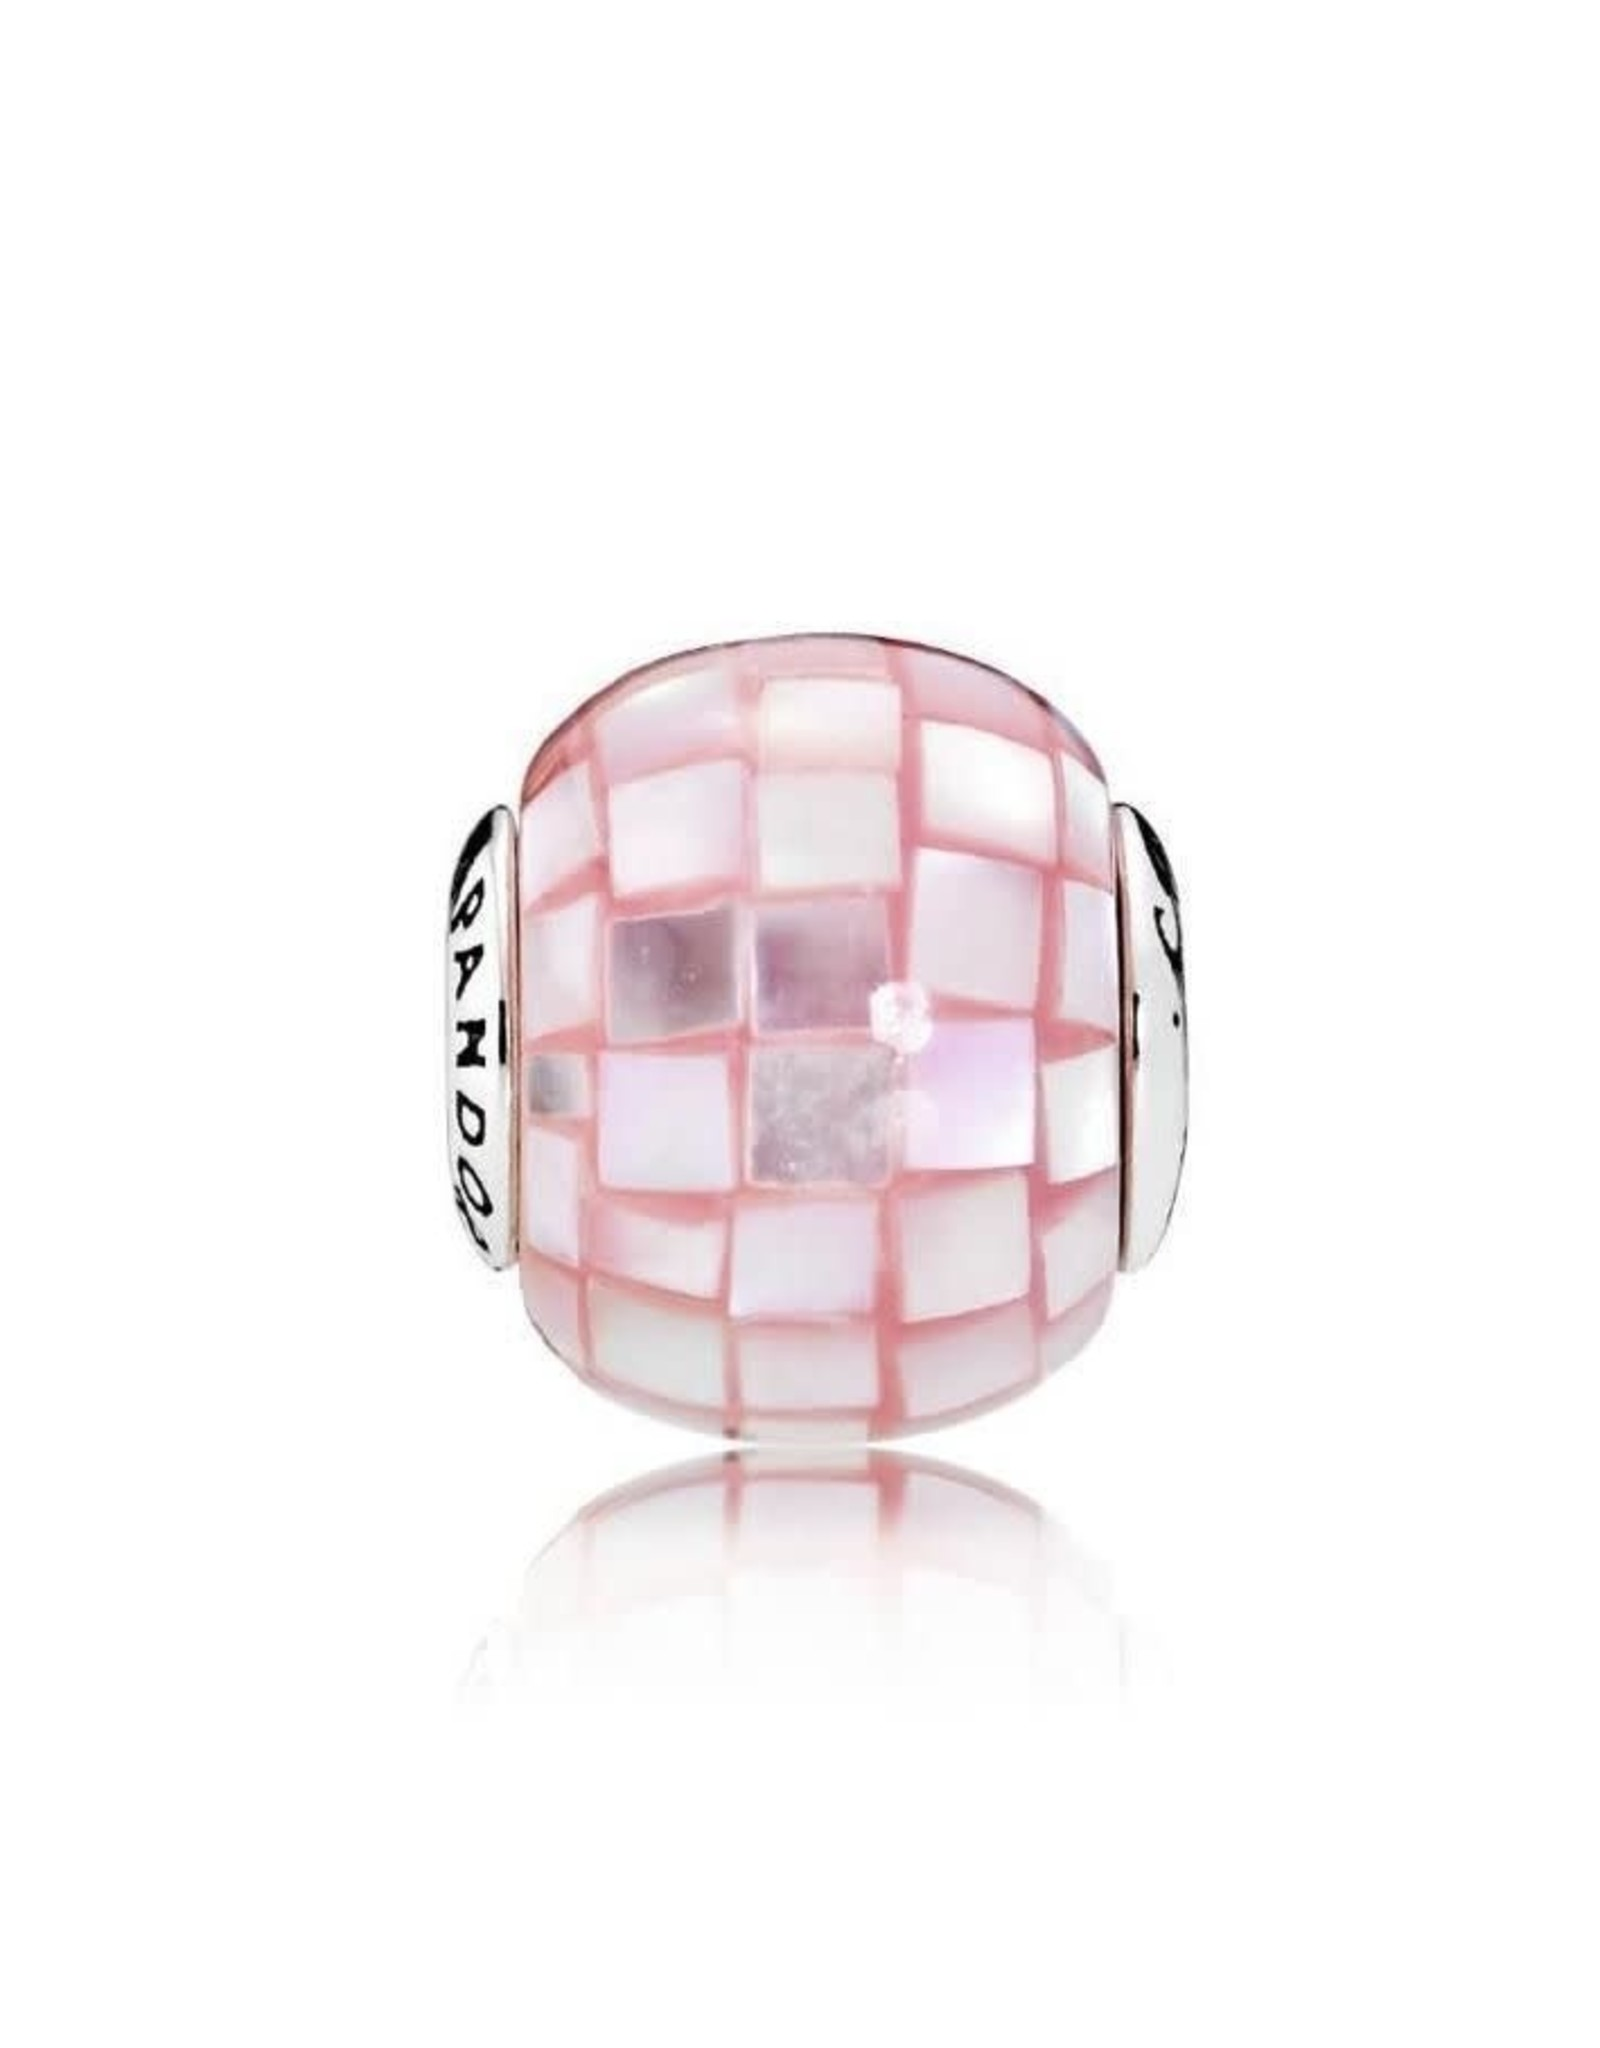 Pandora Pandora Essence Charm,Compassion Mother Of Pearl Pink Mosaic